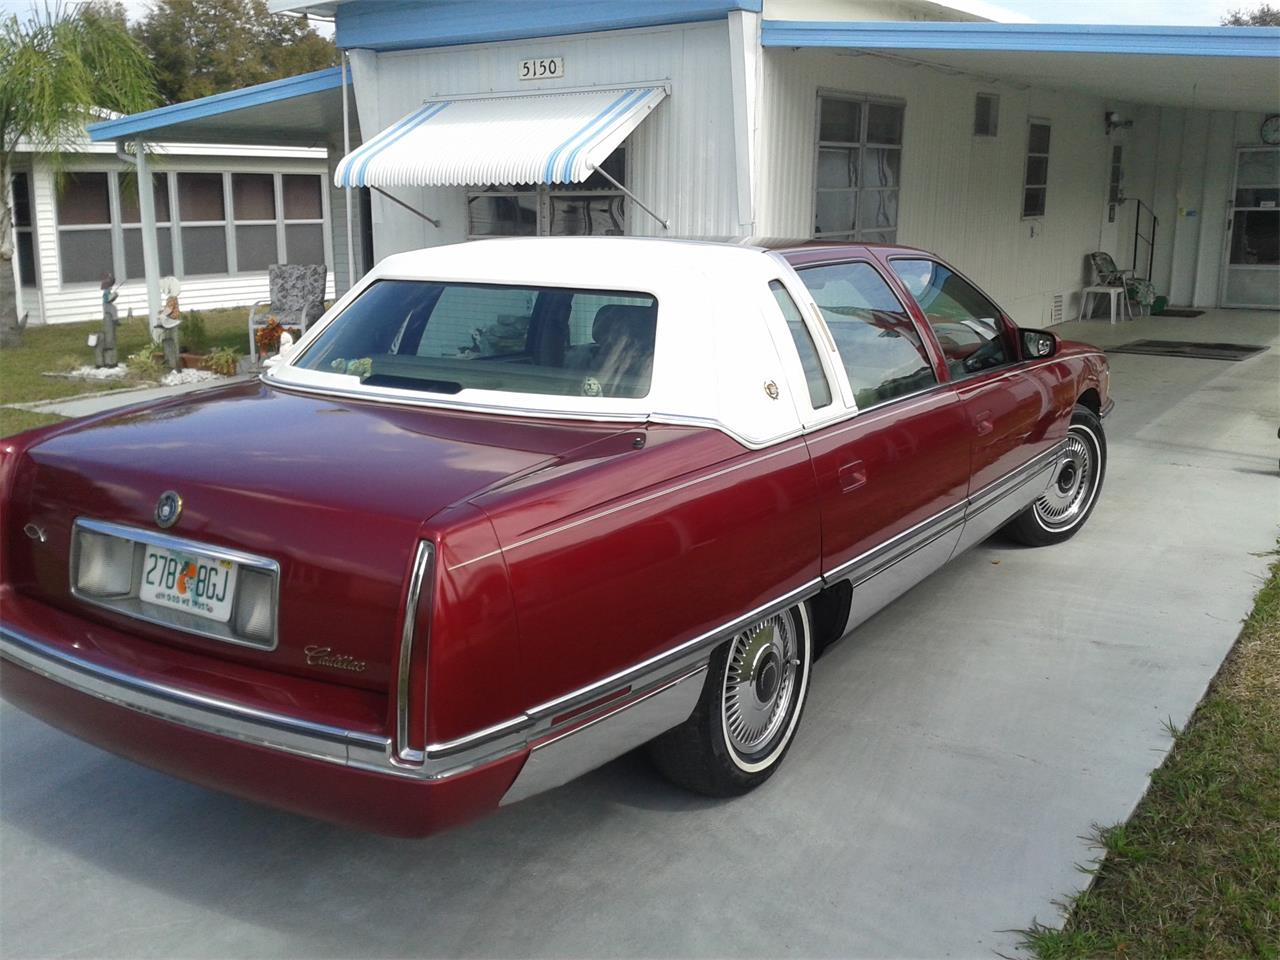 1995 cadillac deville for sale classiccars com cc 782142 1995 cadillac deville for sale